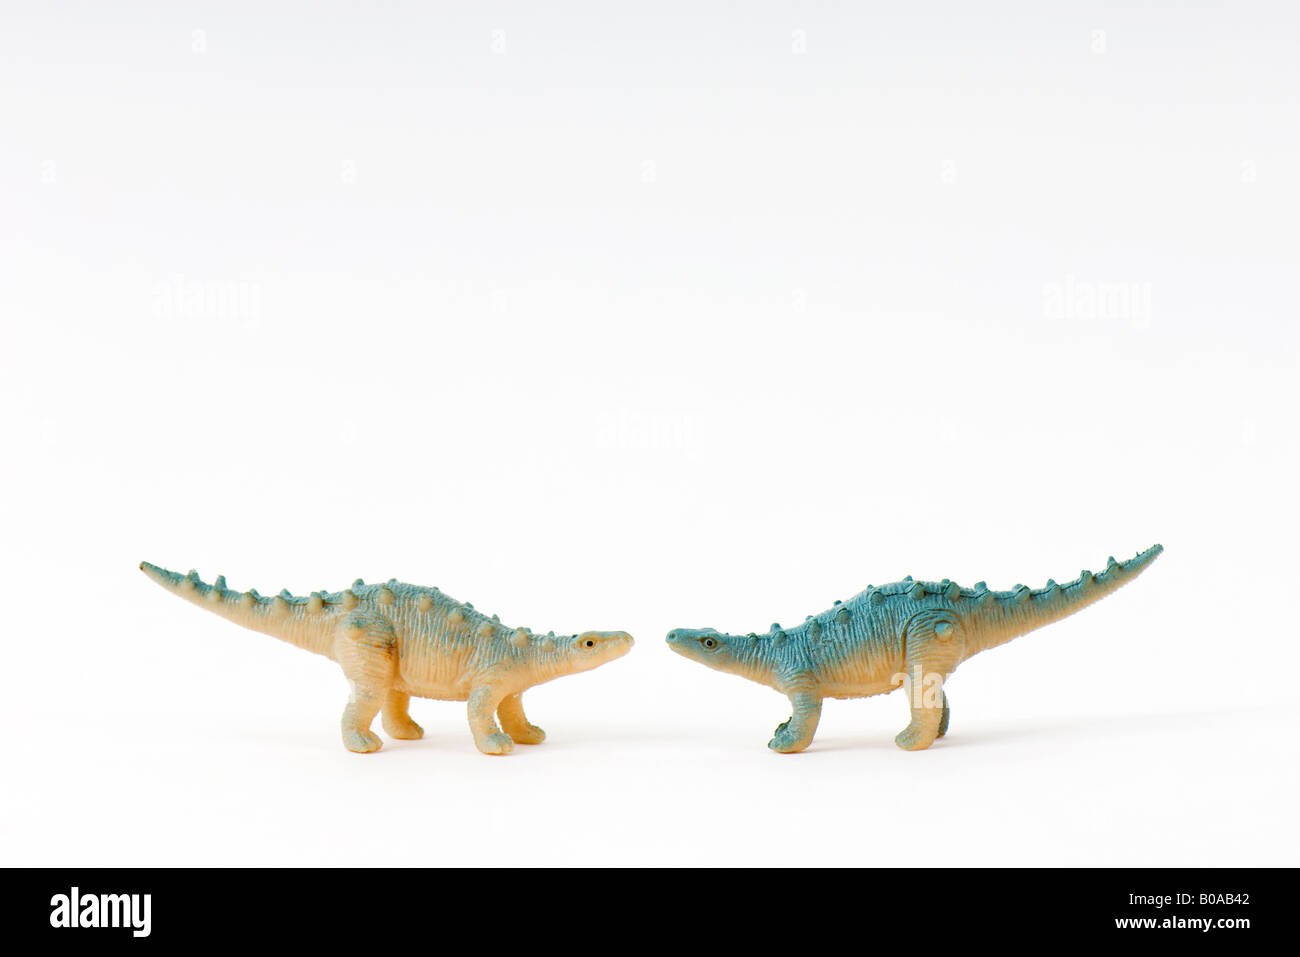 Toy dinosaurs facing each other - Stock Image